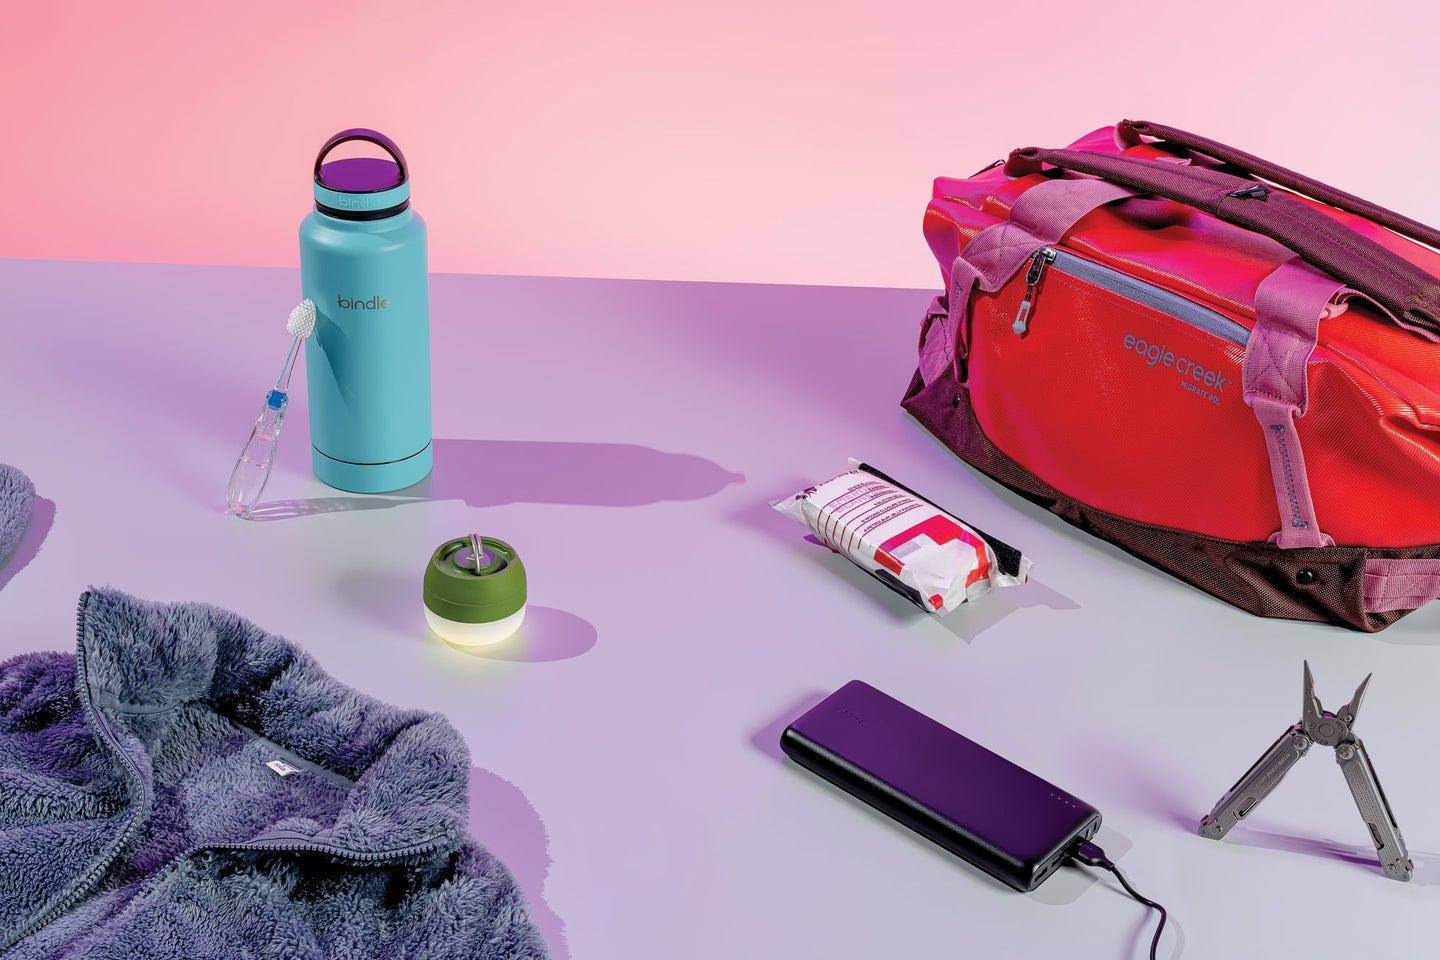 emergency kit items on a table